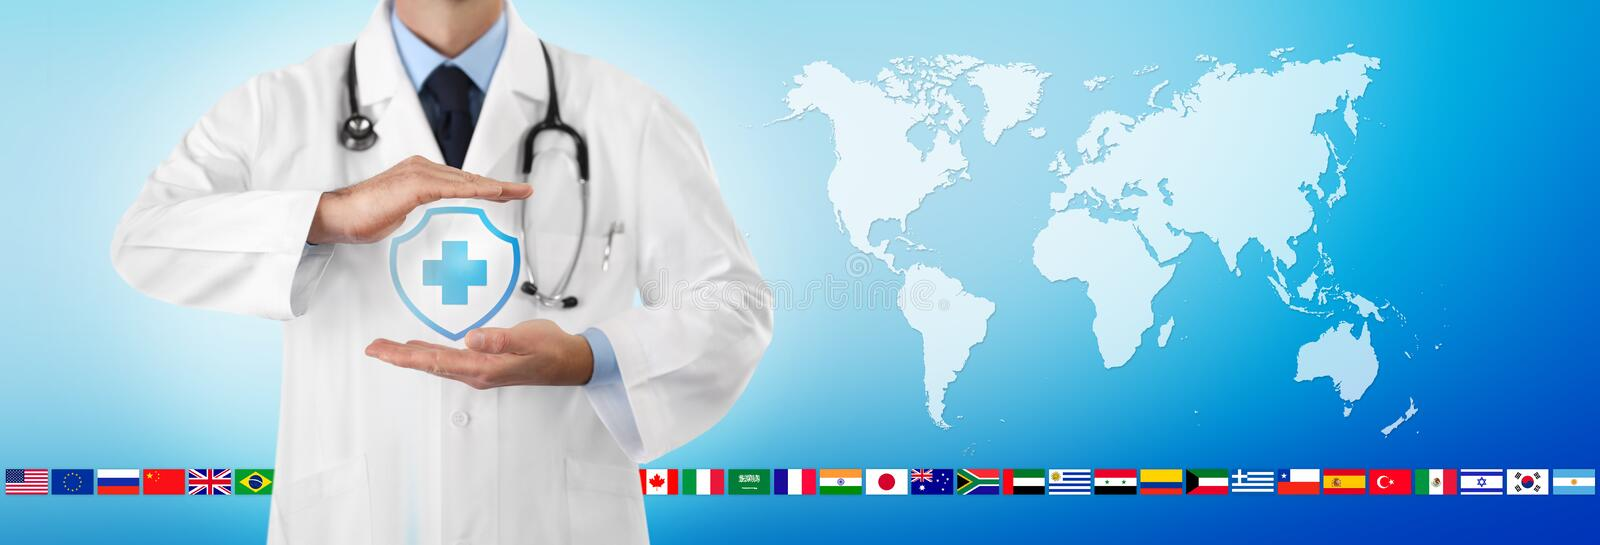 International travel medical insurance concept, doctor`s hands protect an shield cross icon, on blue background with stock photography